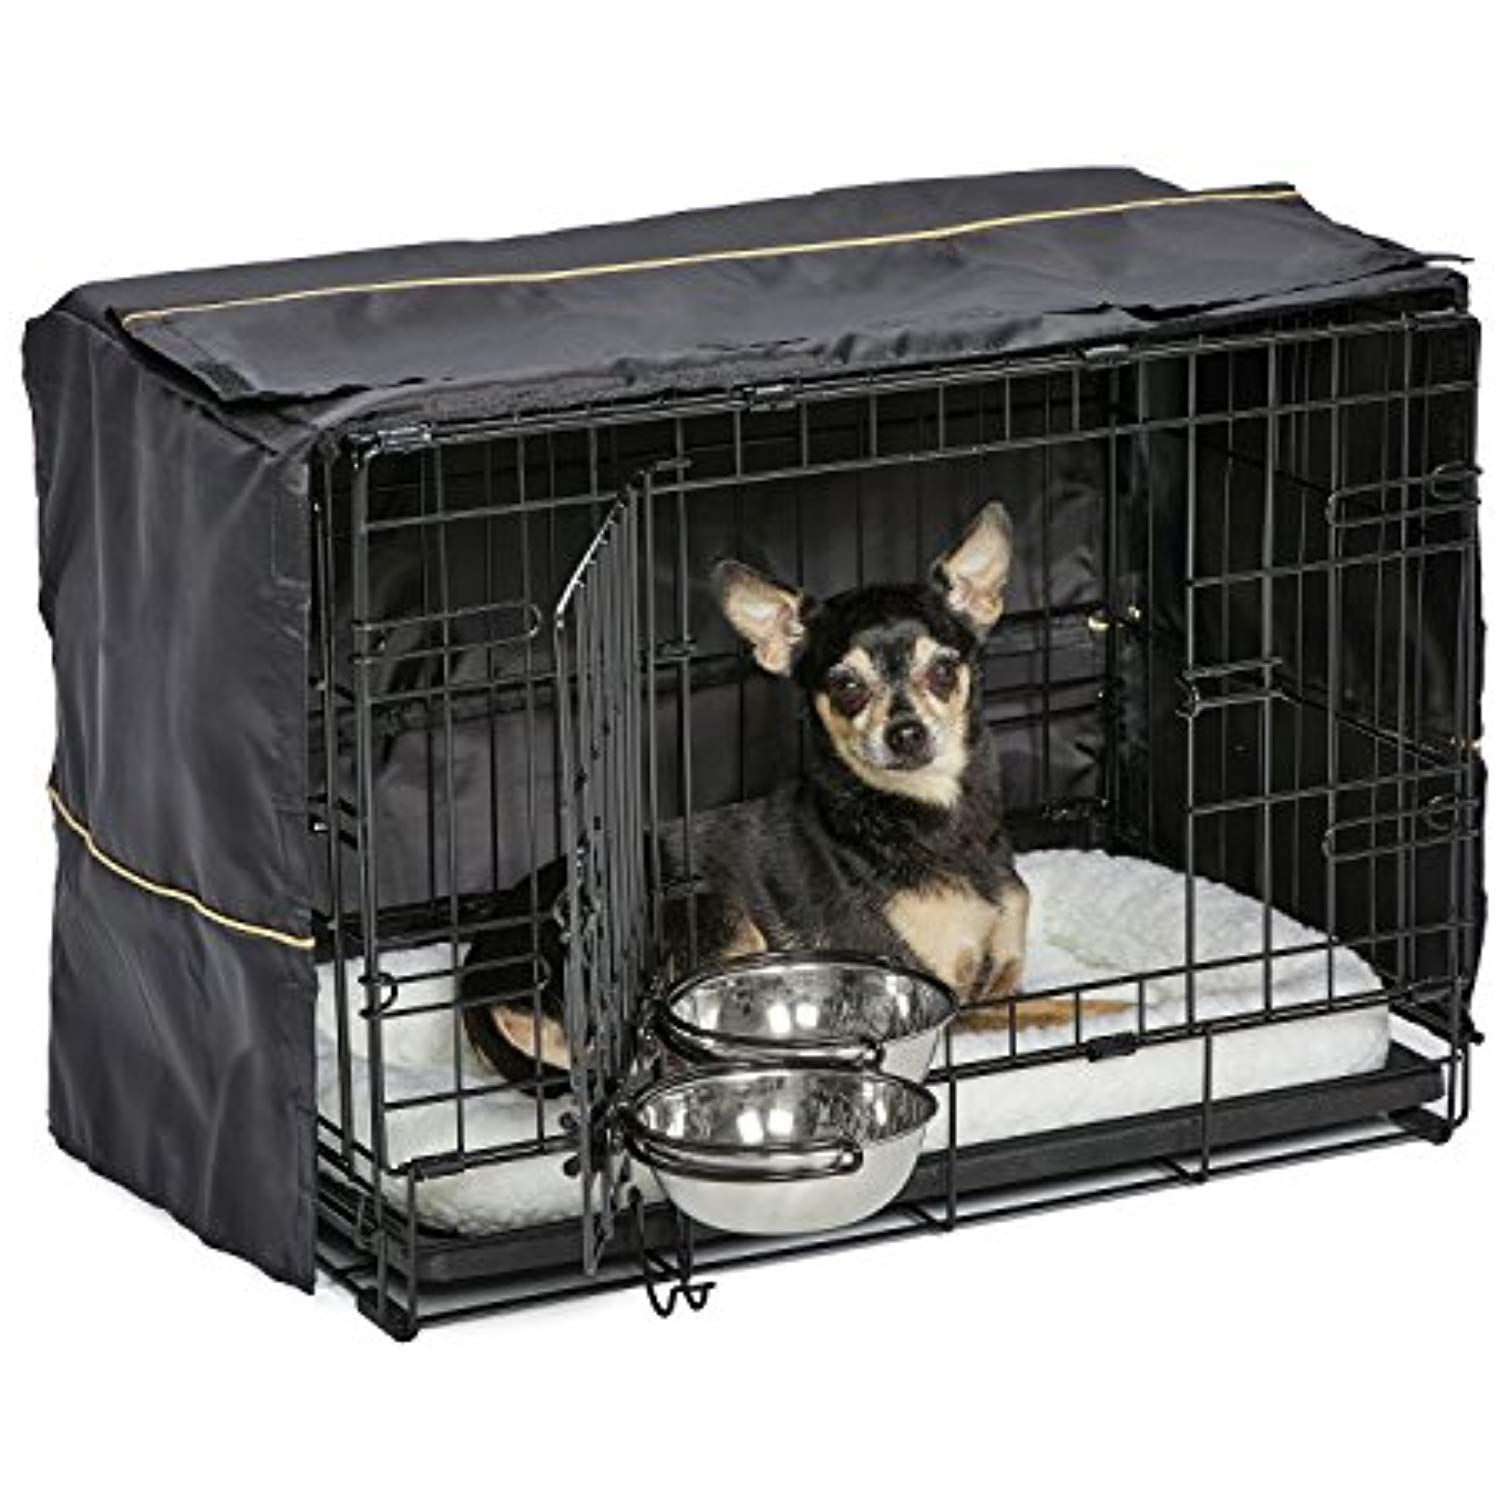 Midwest Homes For Pets Dog Crate Starter Kit One 2 Door Icrate Pet Bed Crate Cover And 2 Pet Bowls 22 Inch Ideal Fo Dog Crate Cover Dog Crate Crate Cover